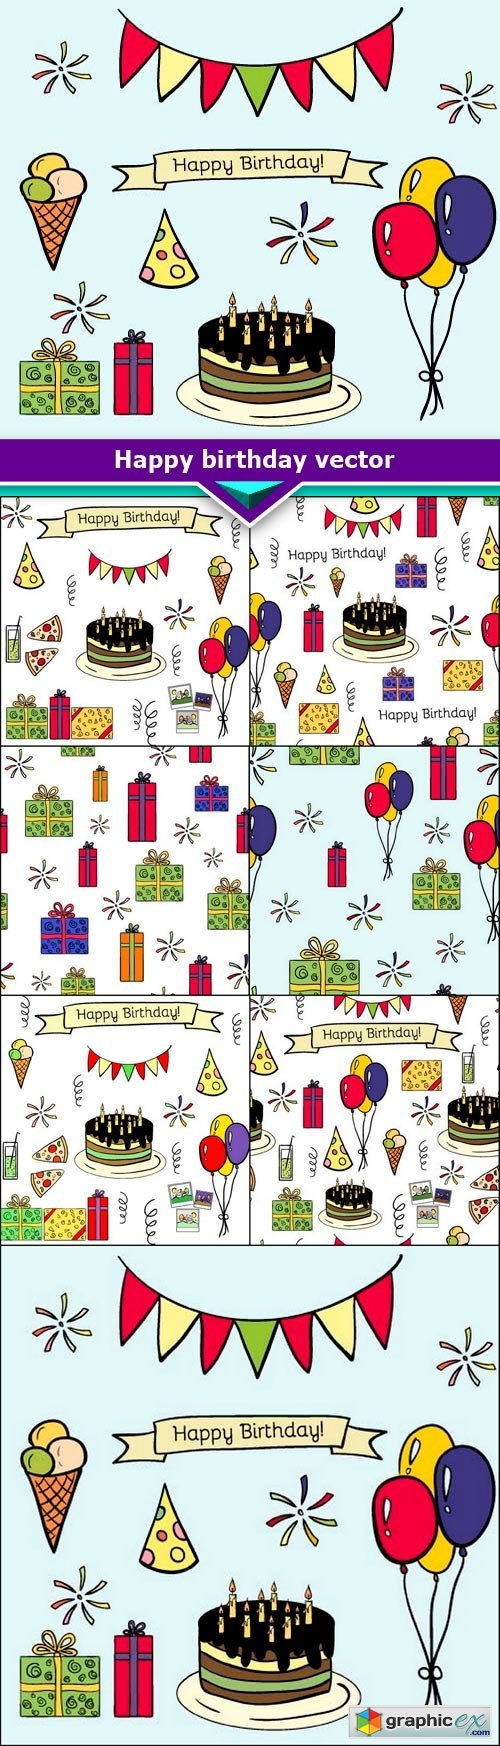 Happy birthday vector doodle hand-drawn seamless pattern of colorful 7x EPS